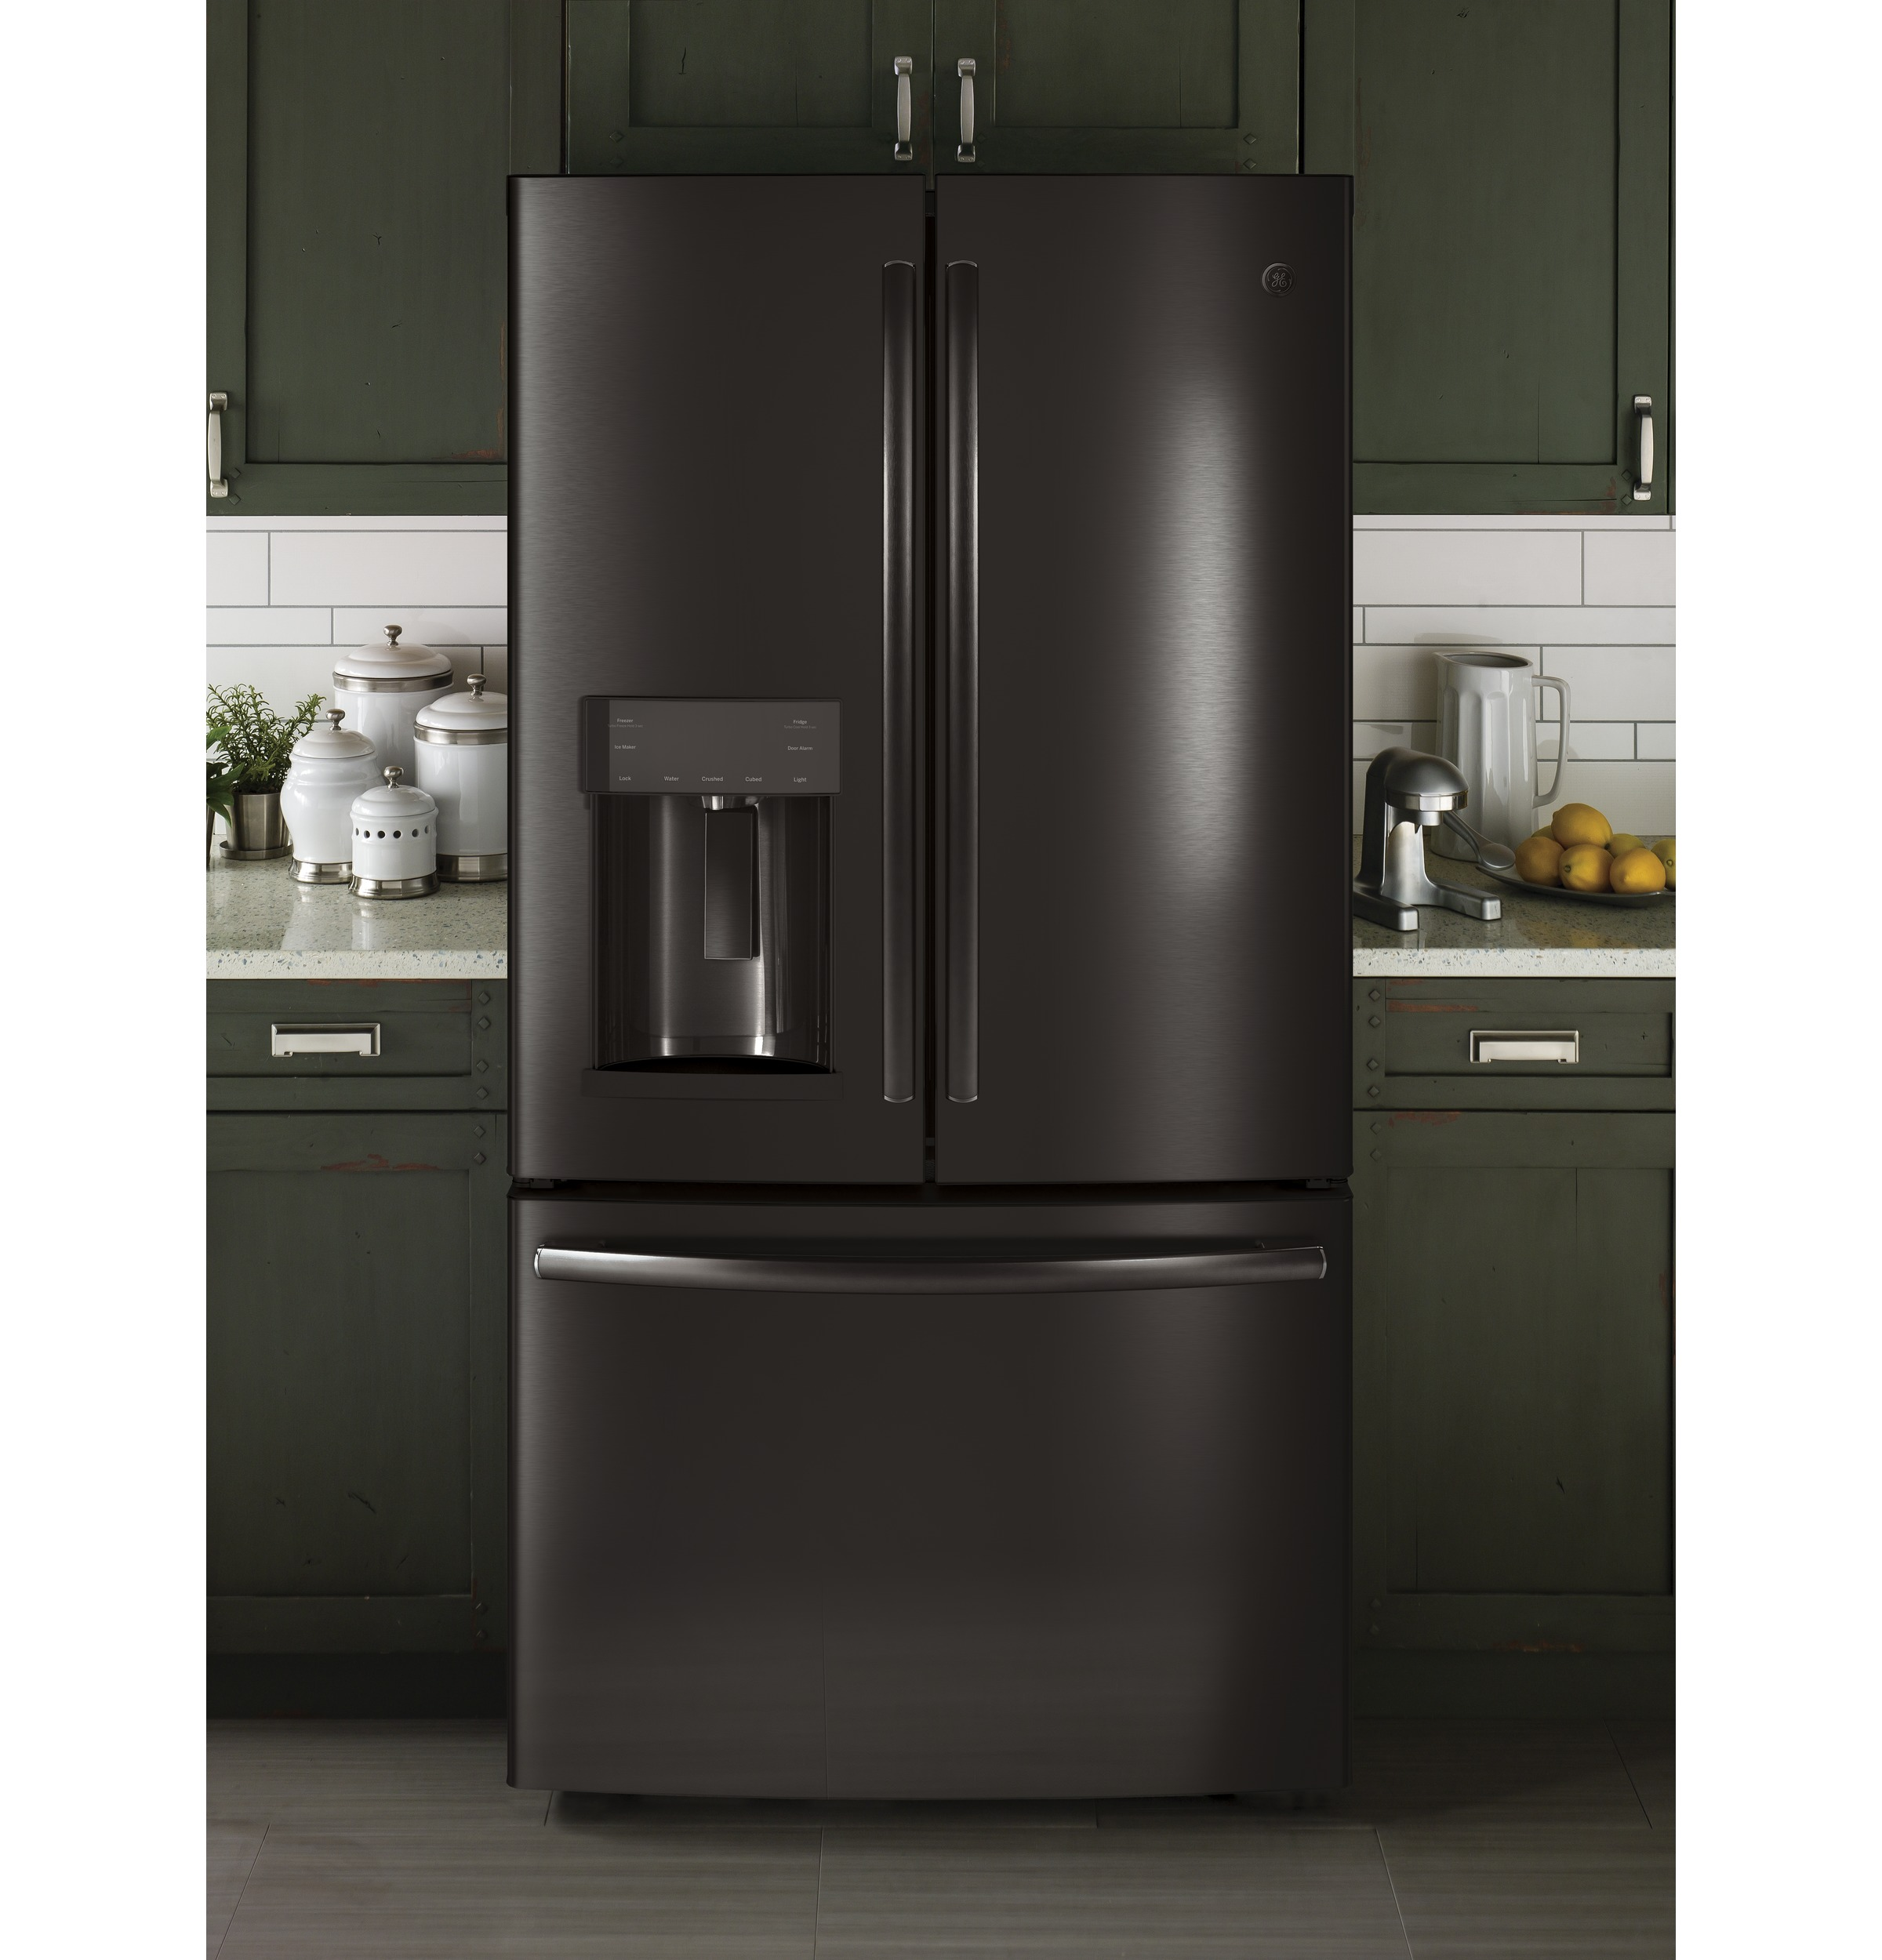 Model: GYE22HBLTS | GE GE® ENERGY STAR® 22.2 Cu. Ft. Counter-Depth French-Door Refrigerator